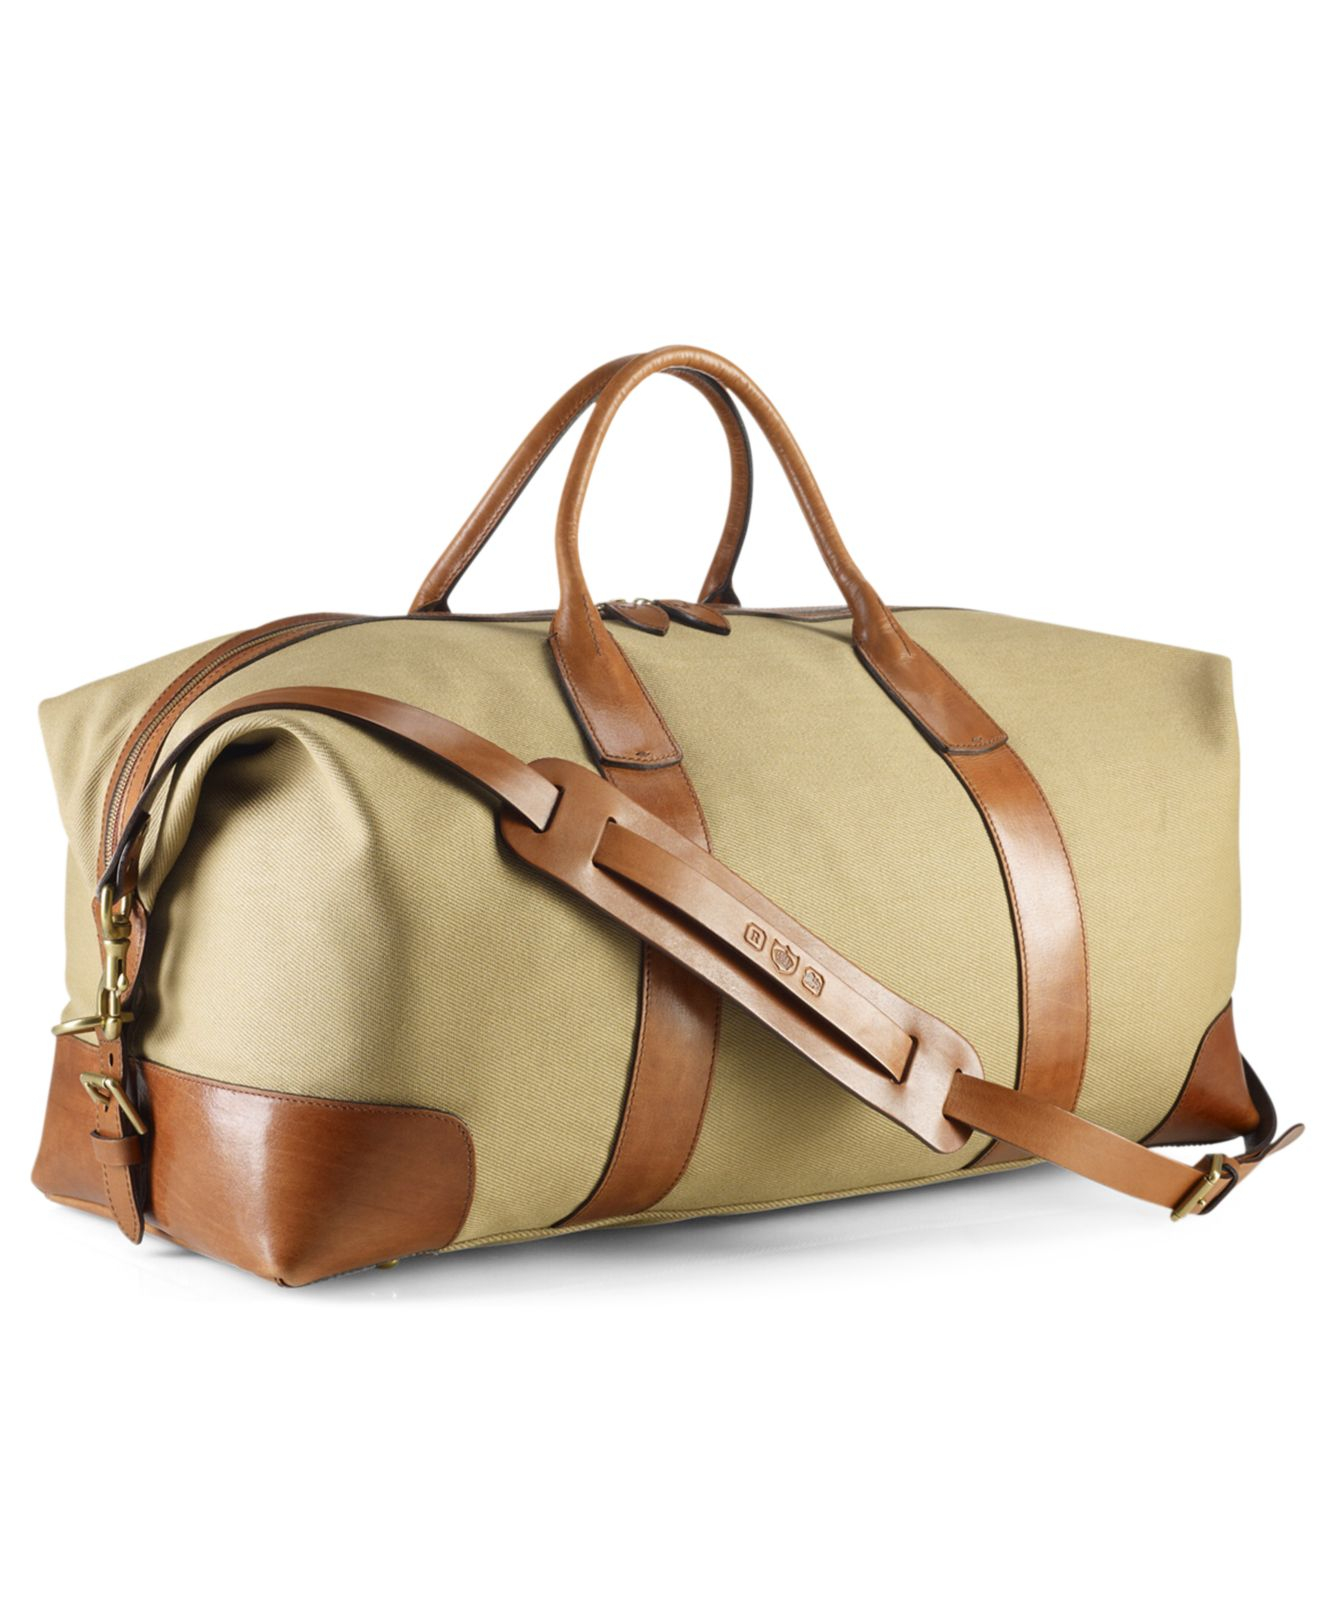 b669d9f089e7 Lyst - Polo Ralph Lauren Core Canvas Duffle Bag in Natural for Men